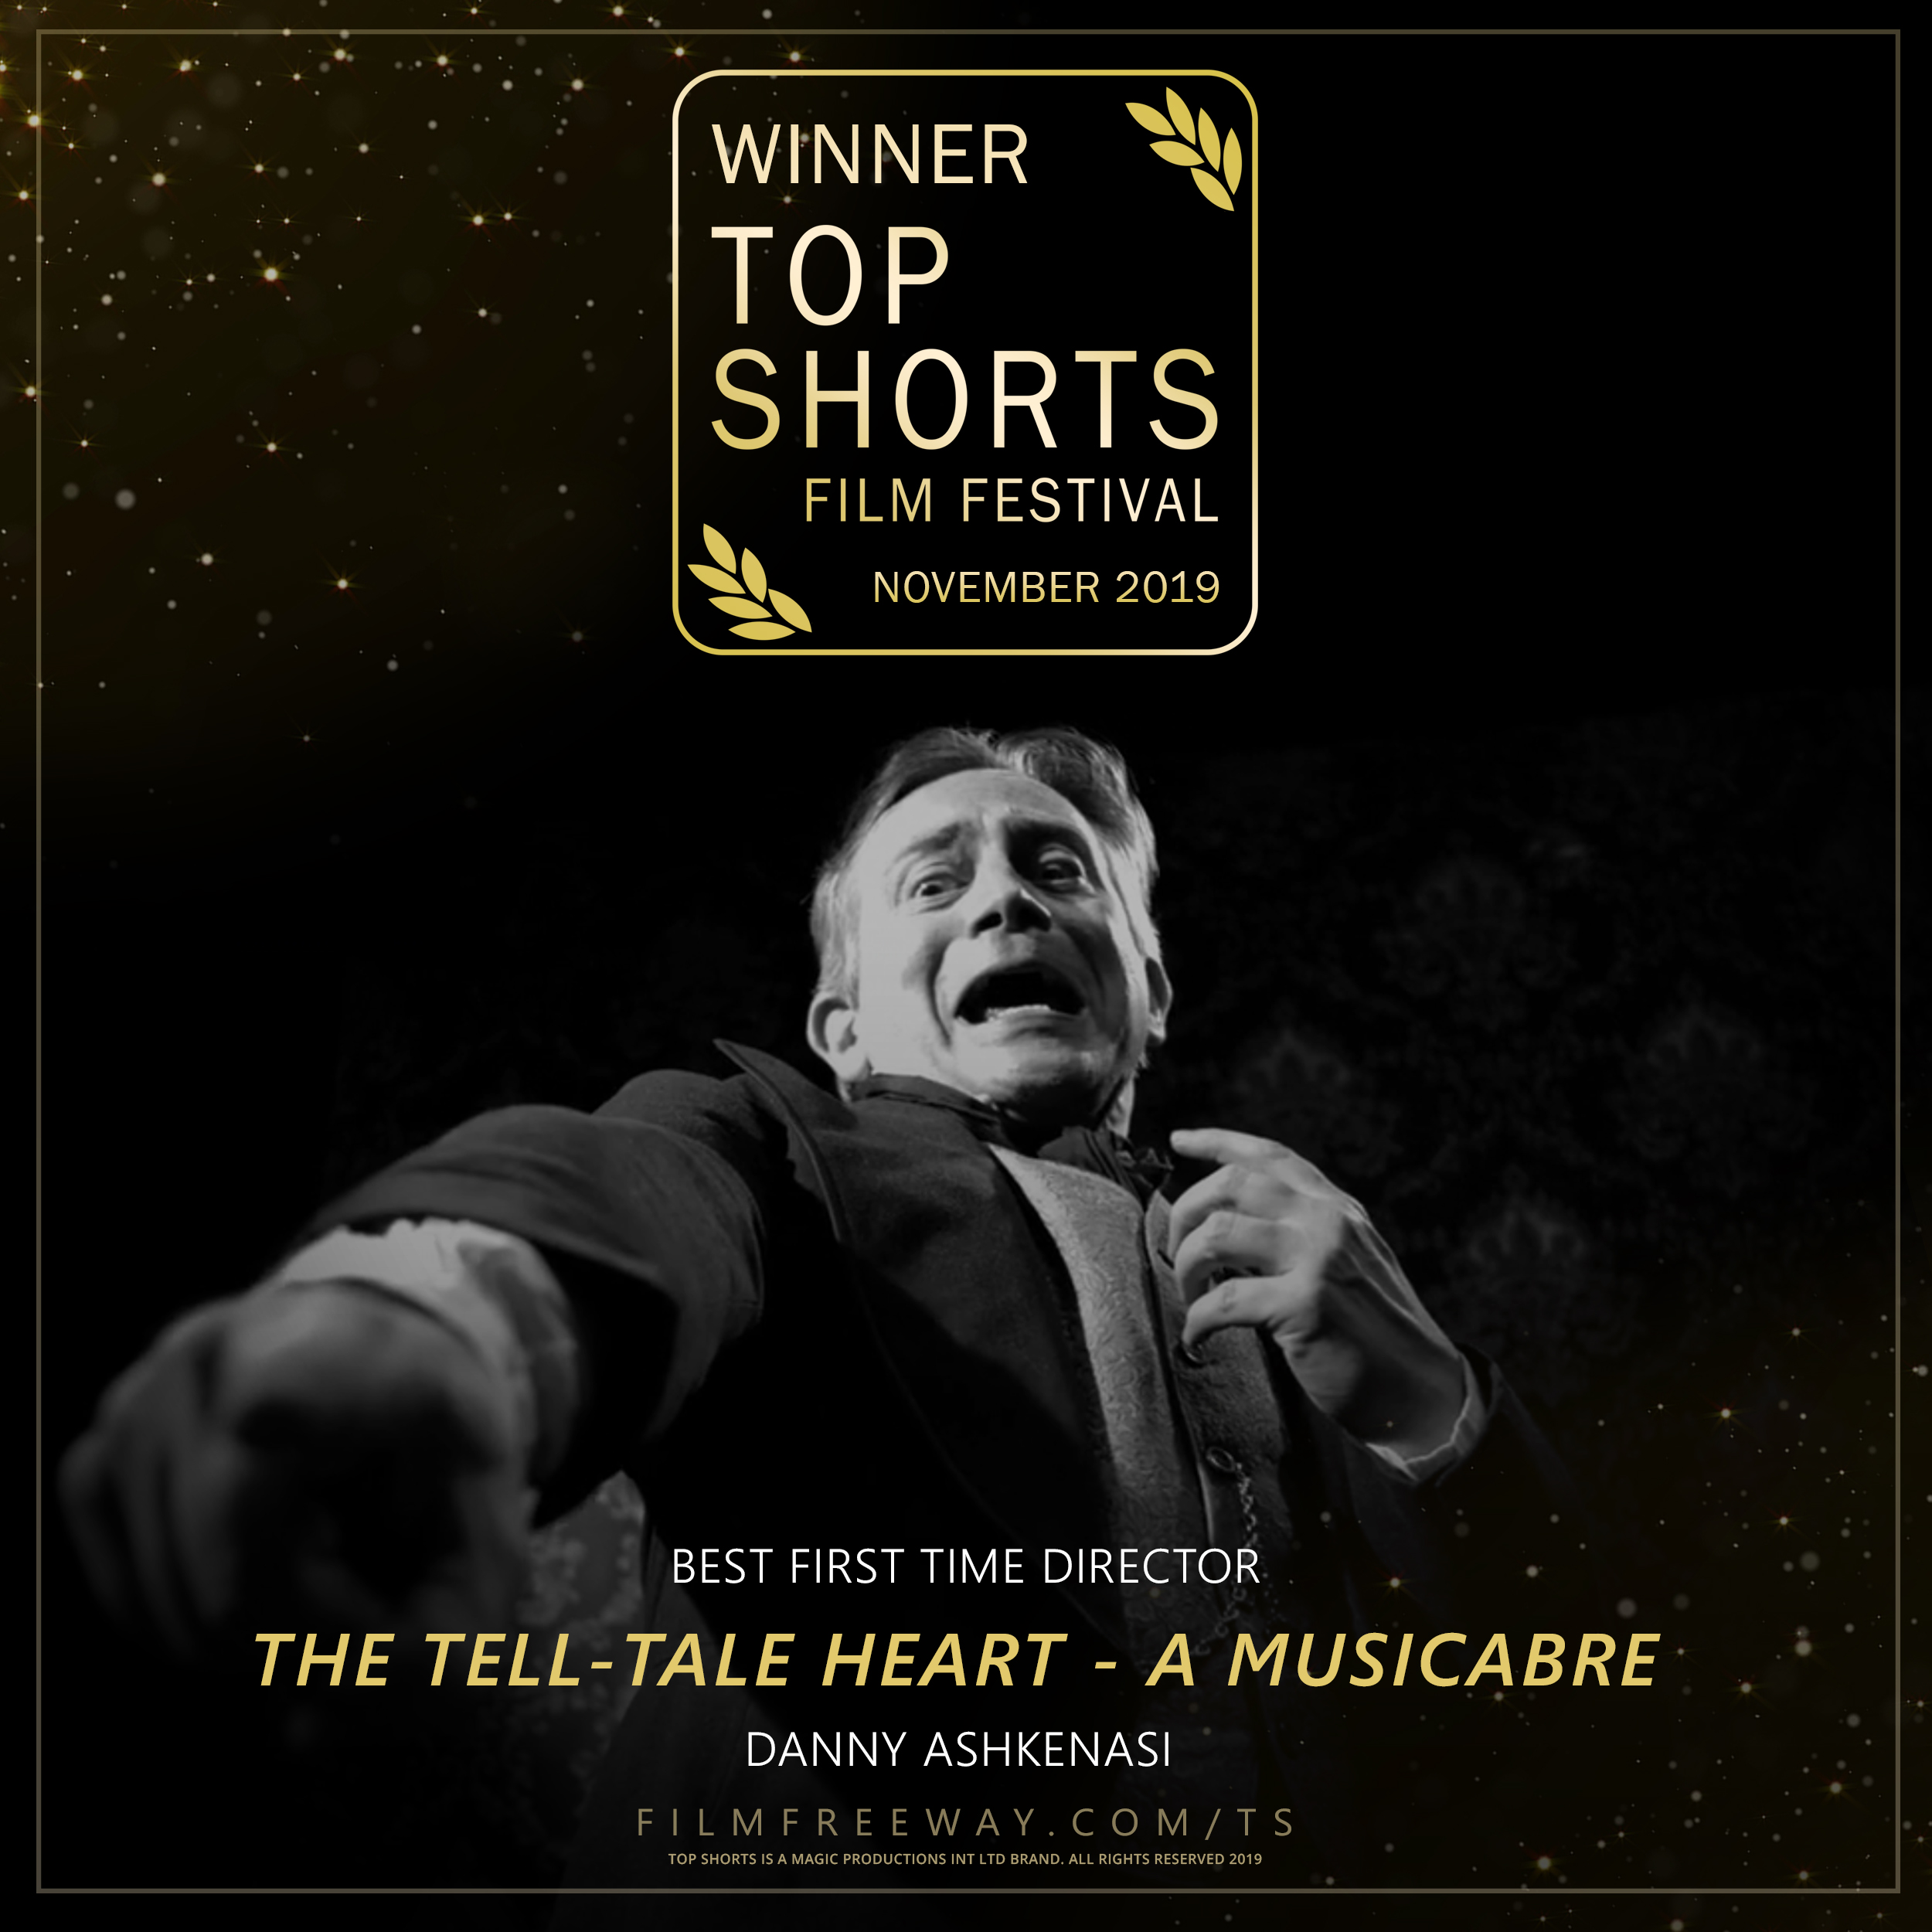 Top Shorts Winner The Tell-Tale Heart - a Musicabre design